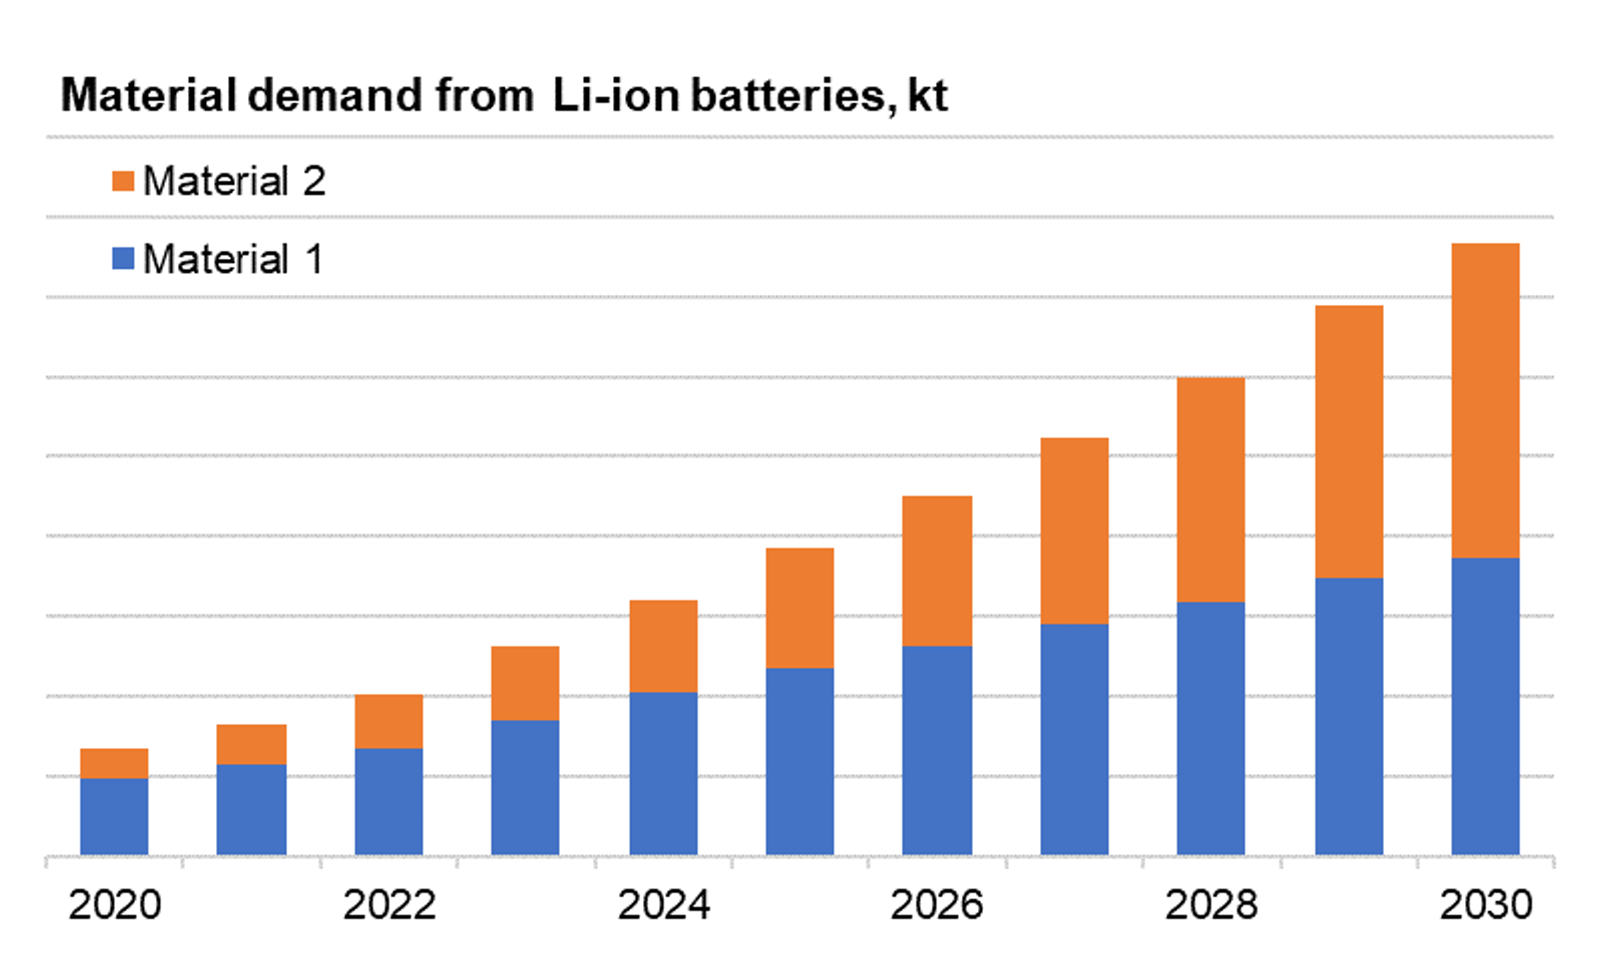 Supply And Demand Current Events 2020.The Li Ion Battery Supply Chain 2020 2030 Idtechex